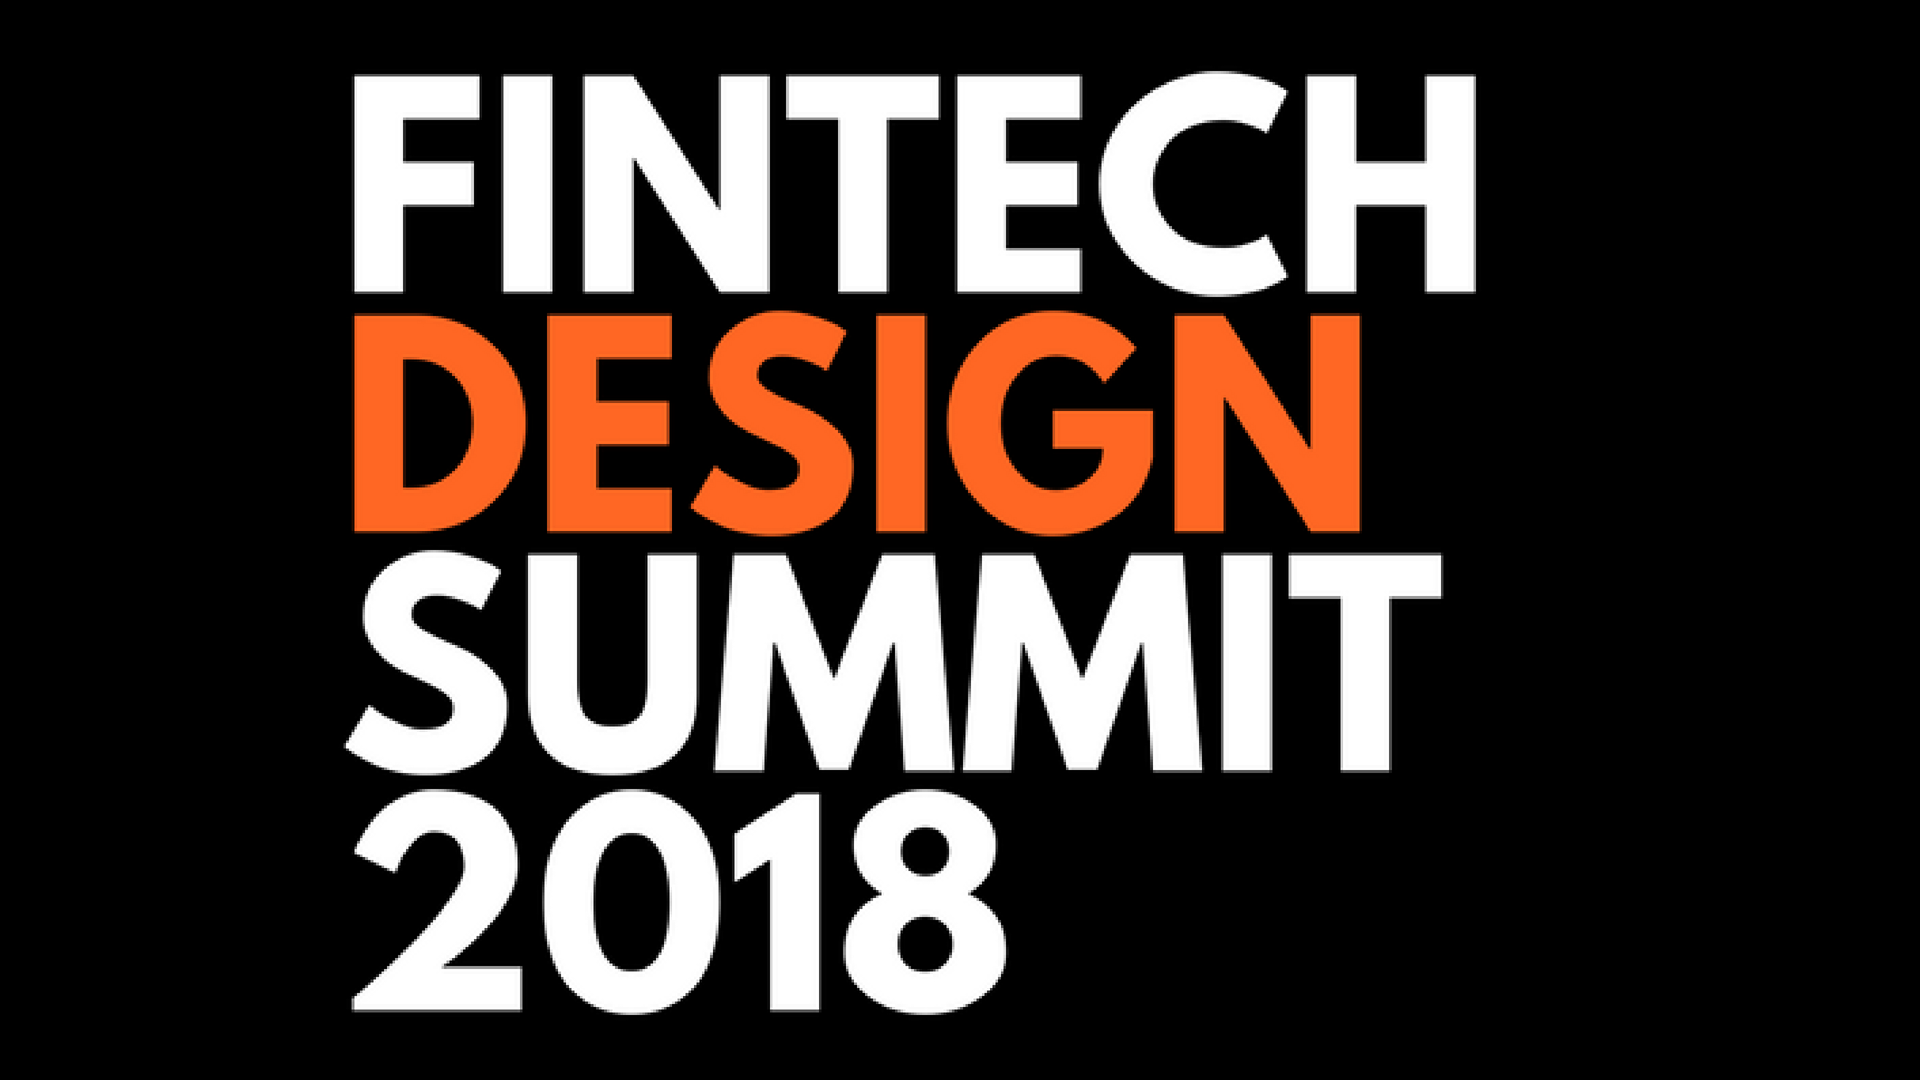 Fintech Design Summit 2018